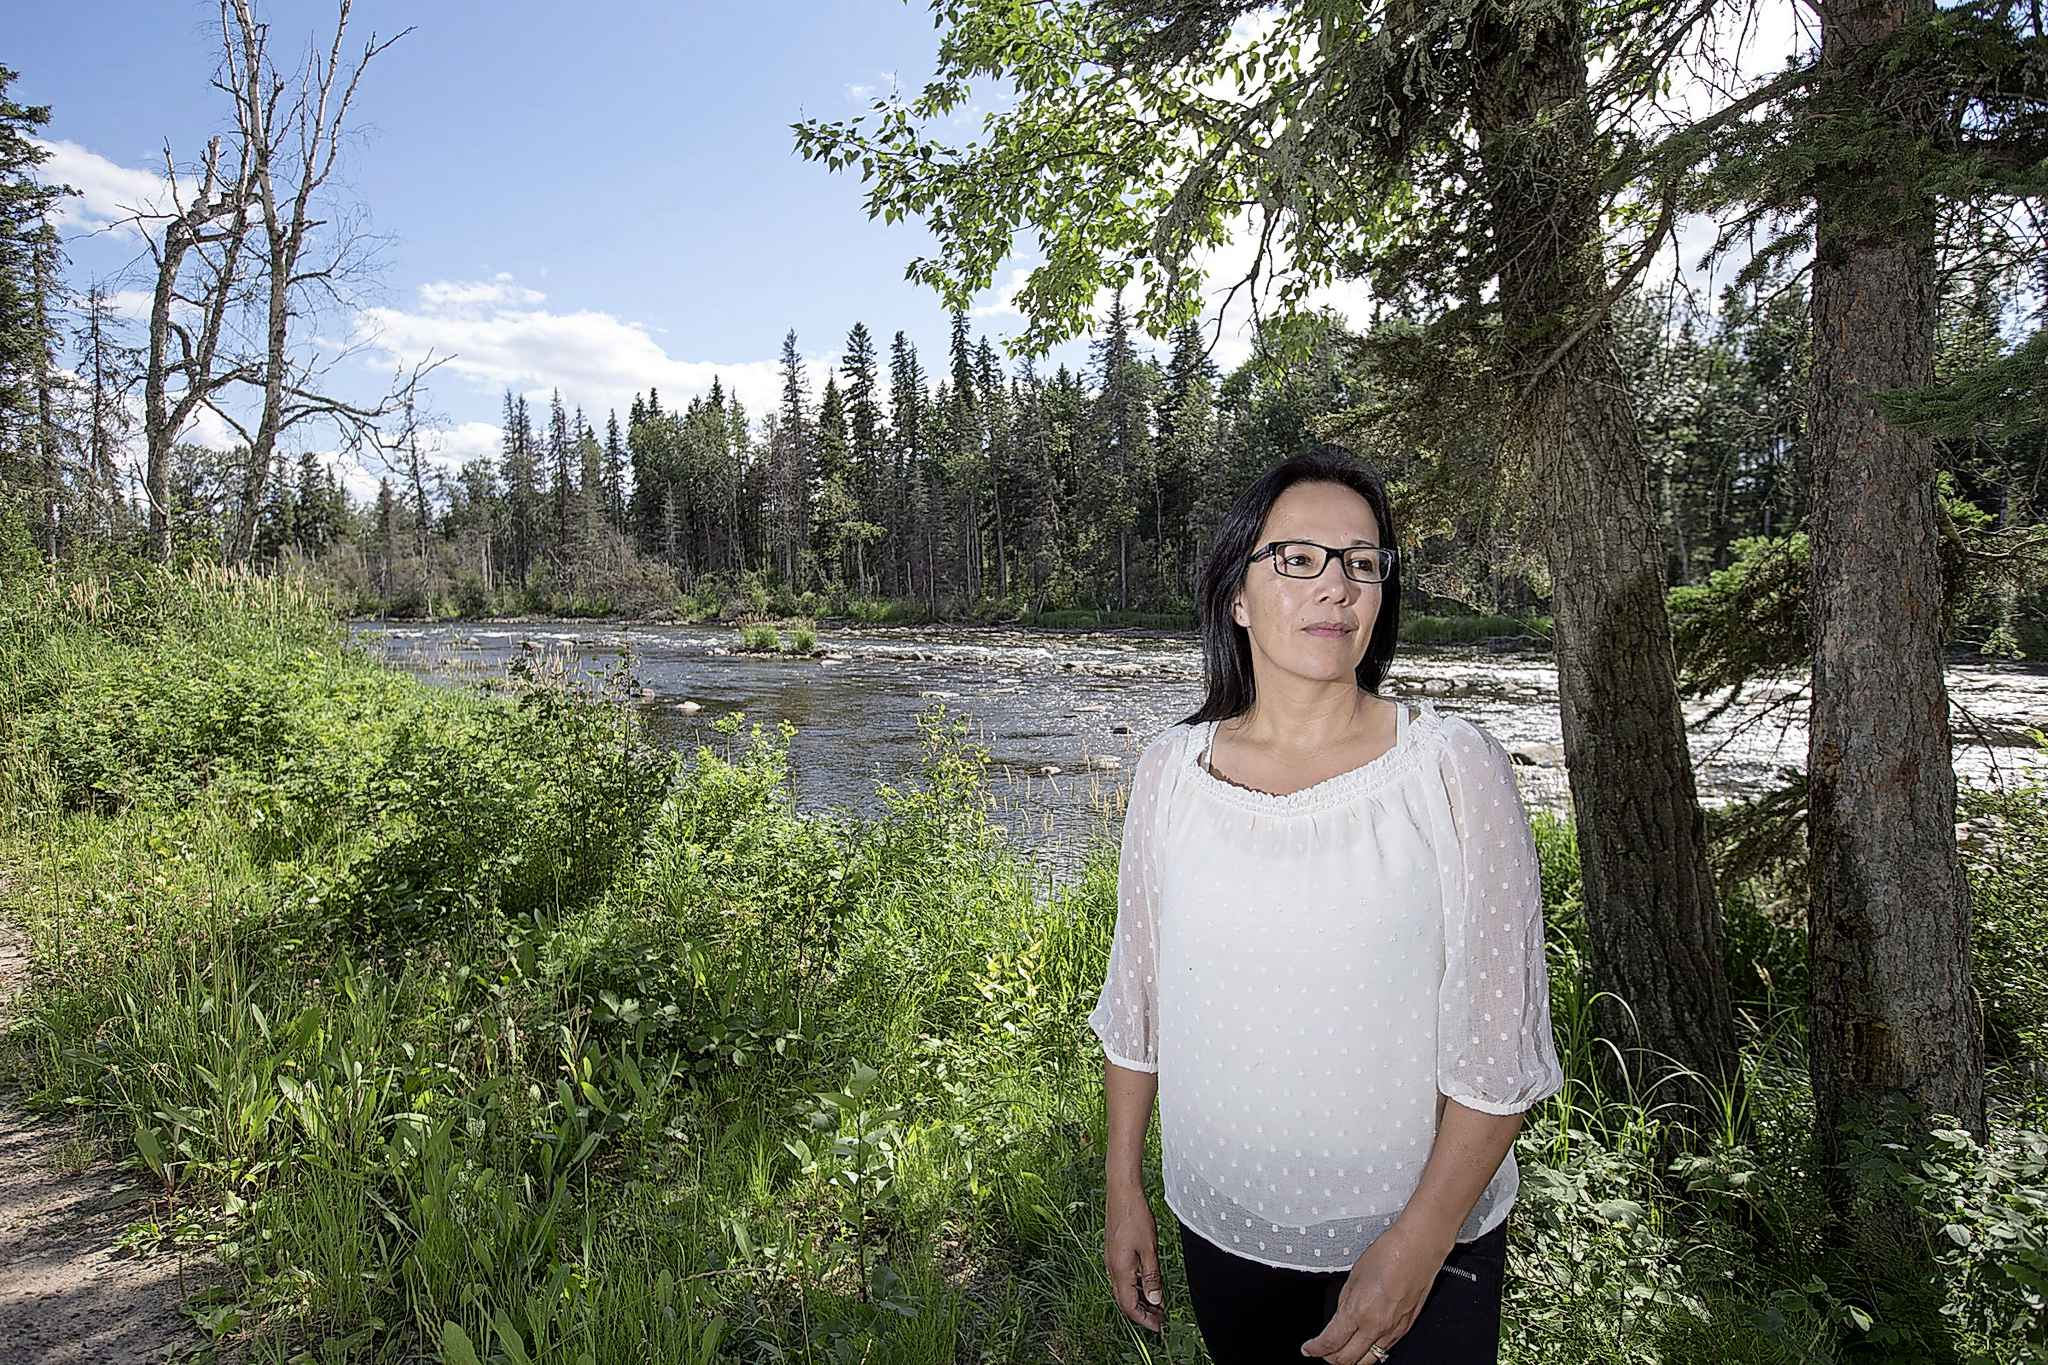 Chief Tammy Cook-Searson of the Lac La Ronge Indian Band is throwing her hat into the ring to seek the Liberal nomination in the northern Saskatchewan riding of Desnethé-Missinippi-Churchill River. (Liam Richards / The Canadian Press files)